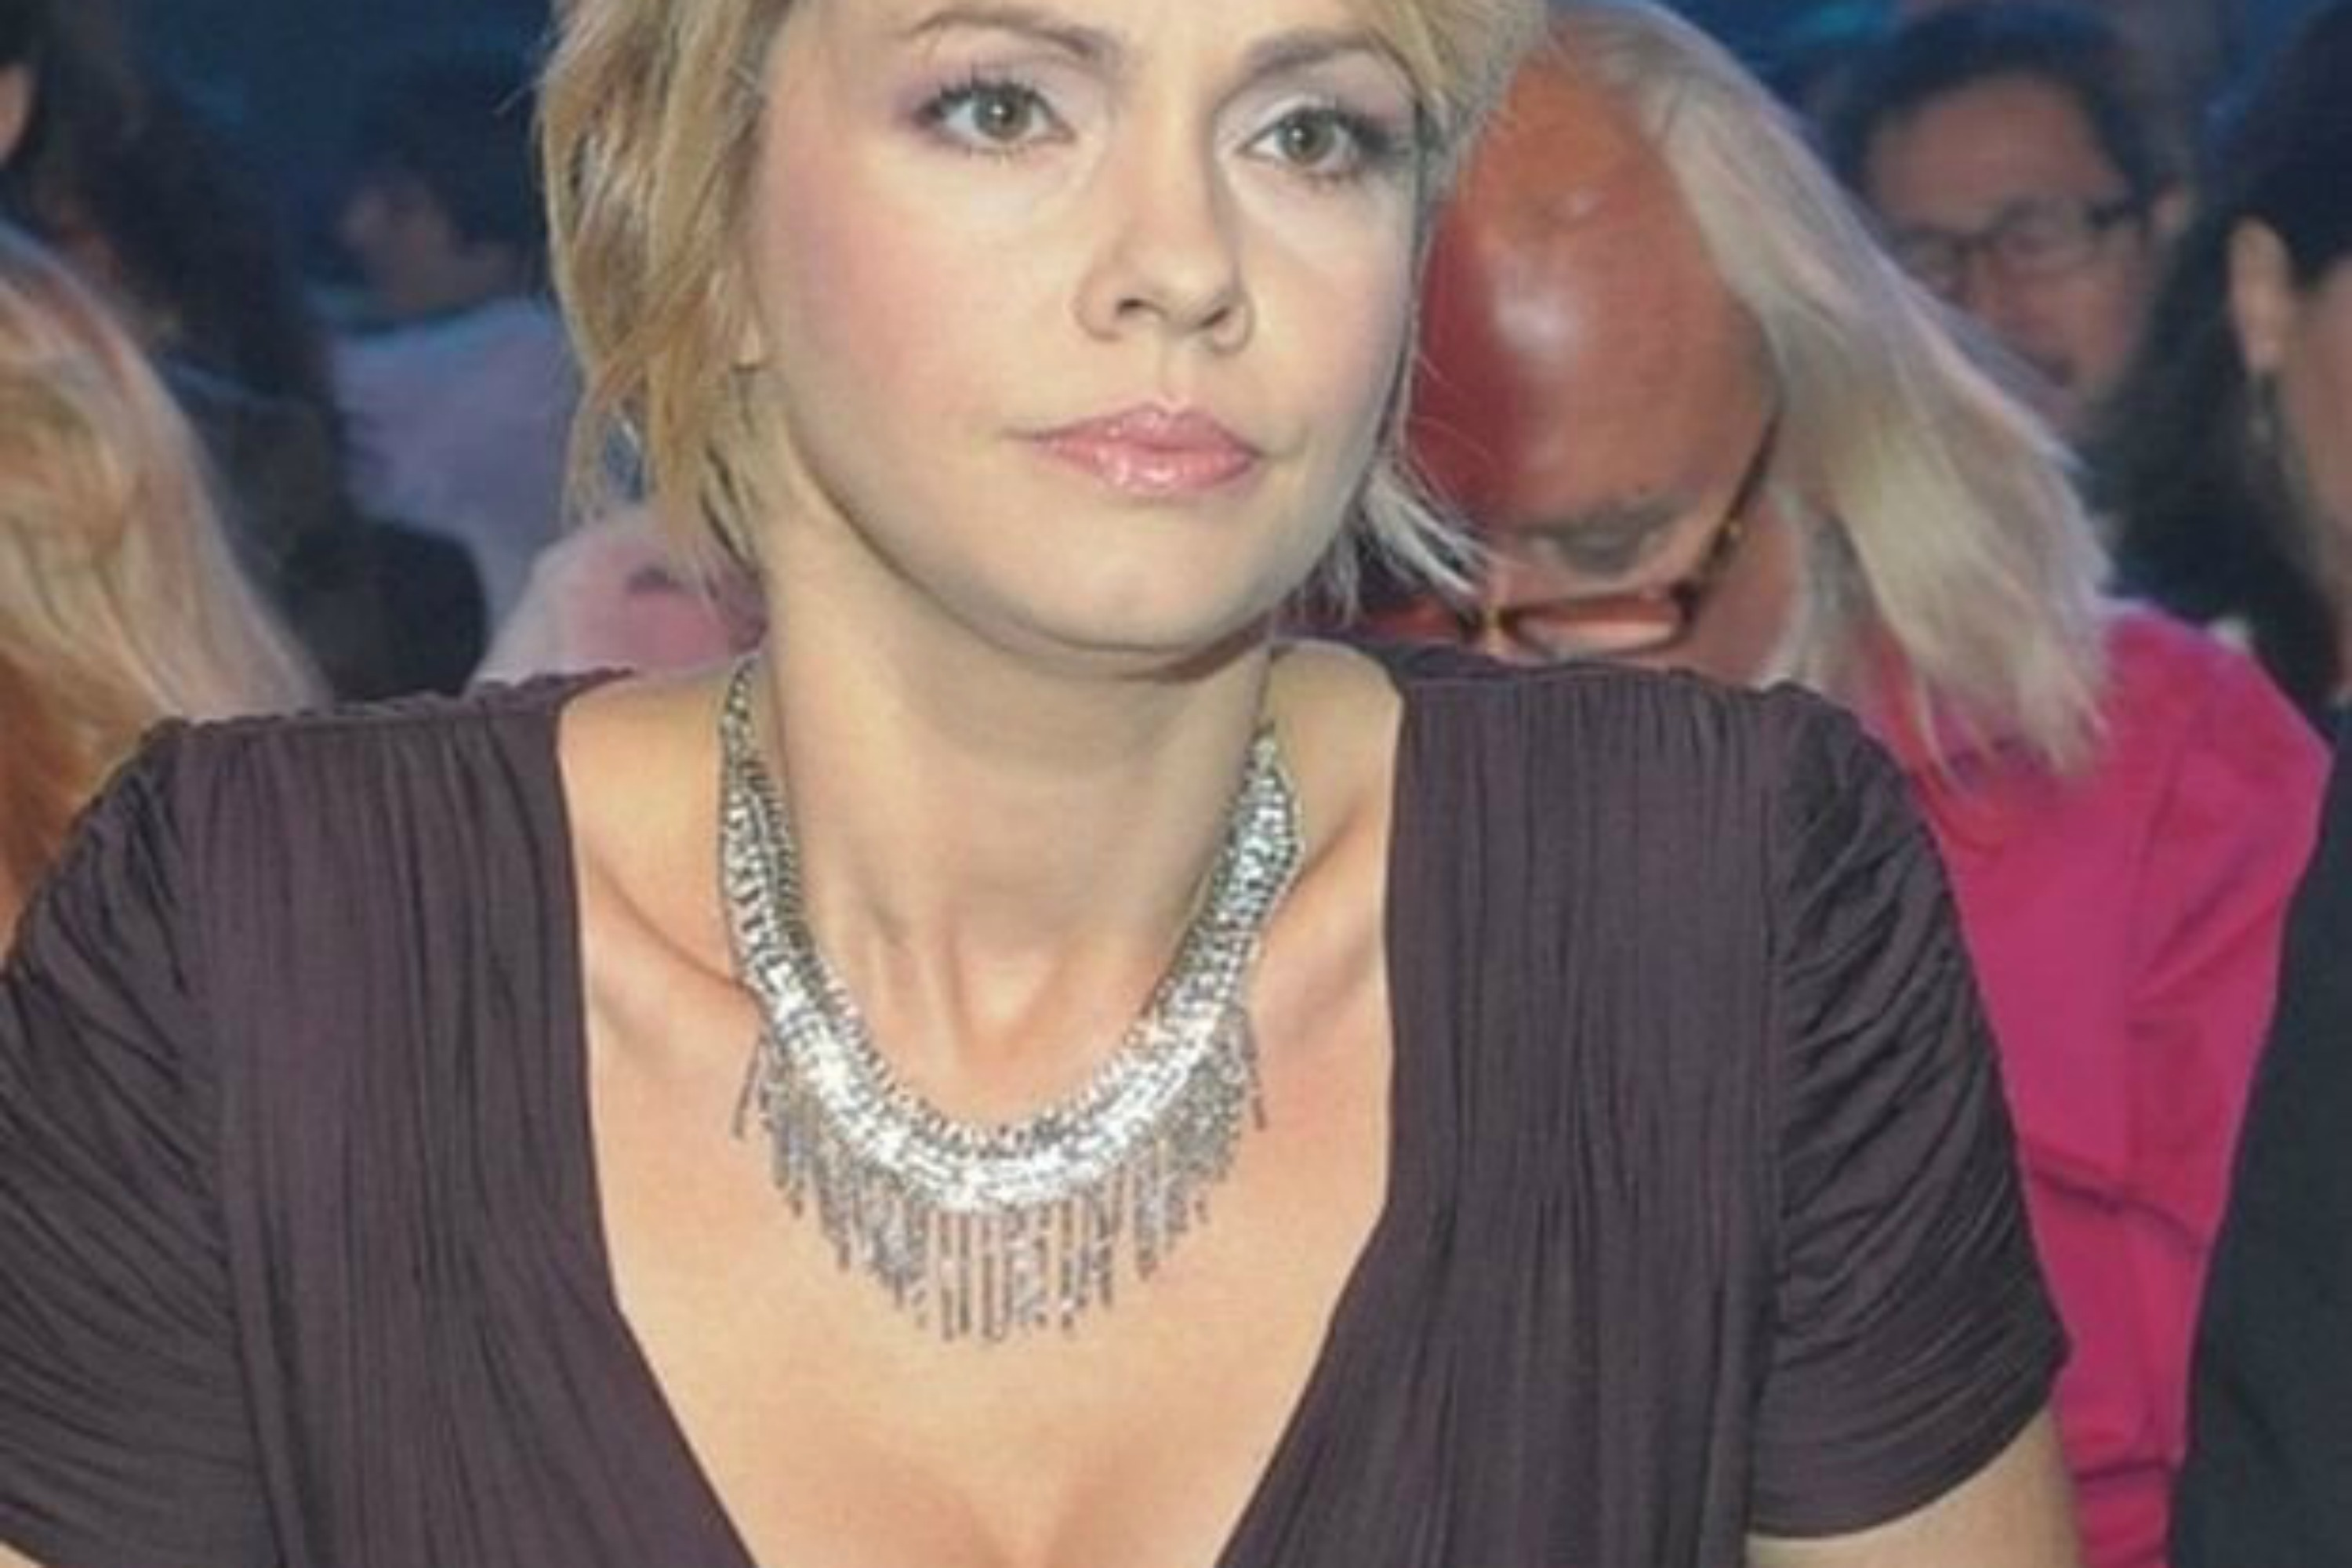 Weronika Marczuk, a Polish-Ukrainian celebrity